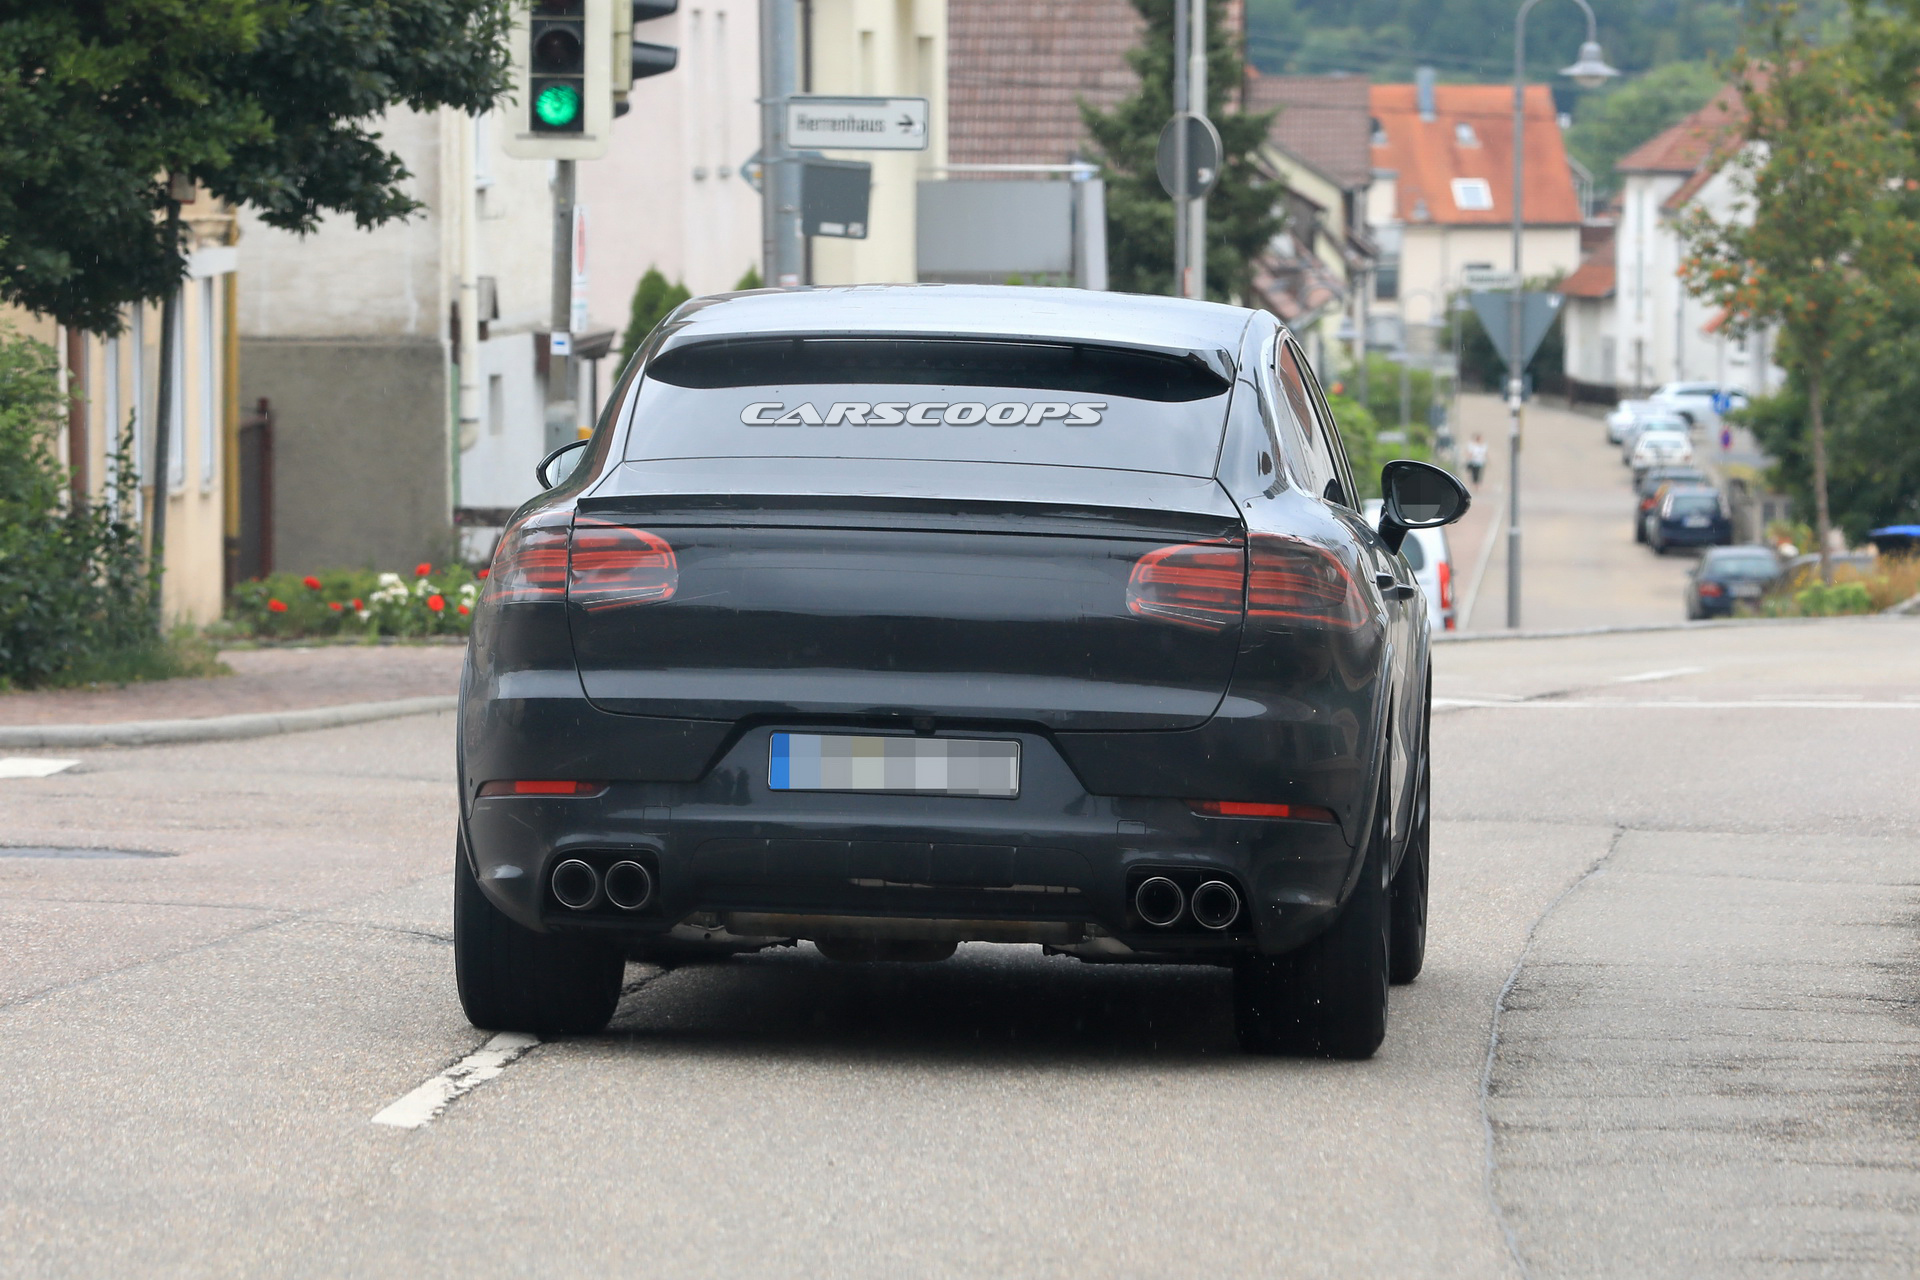 d184480a-porsche-cayenne-coupe-first-spy-1.jpg